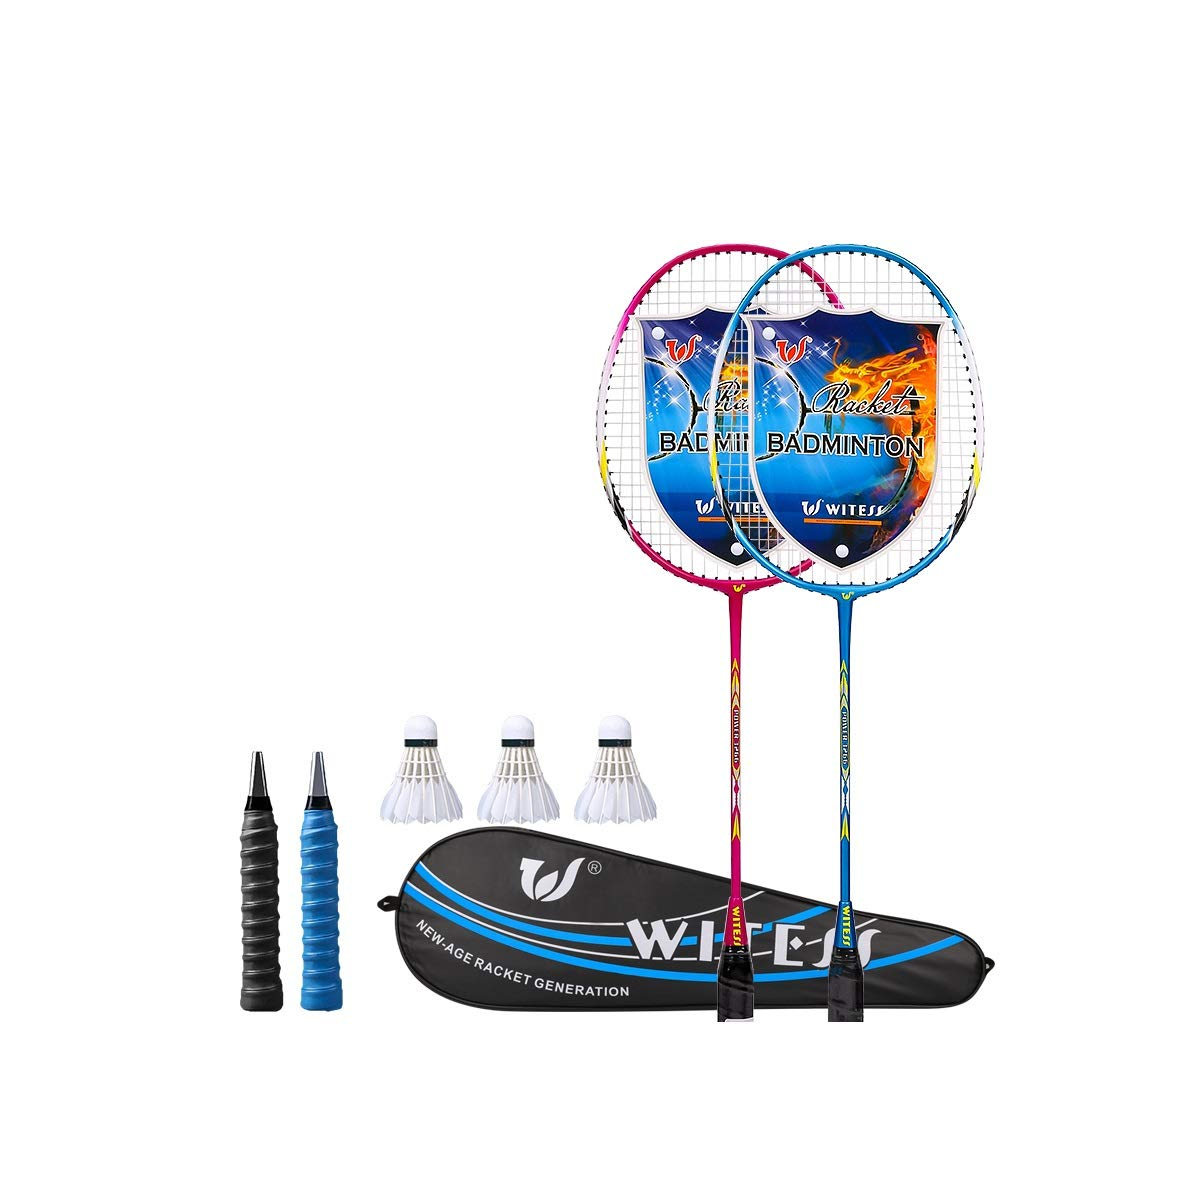 A5 Zhongyue Badminton Racket, Single and Double Shot, Adult and Men's Offensive and Durable. Junior Student Suit, color Choice Badminton Racket